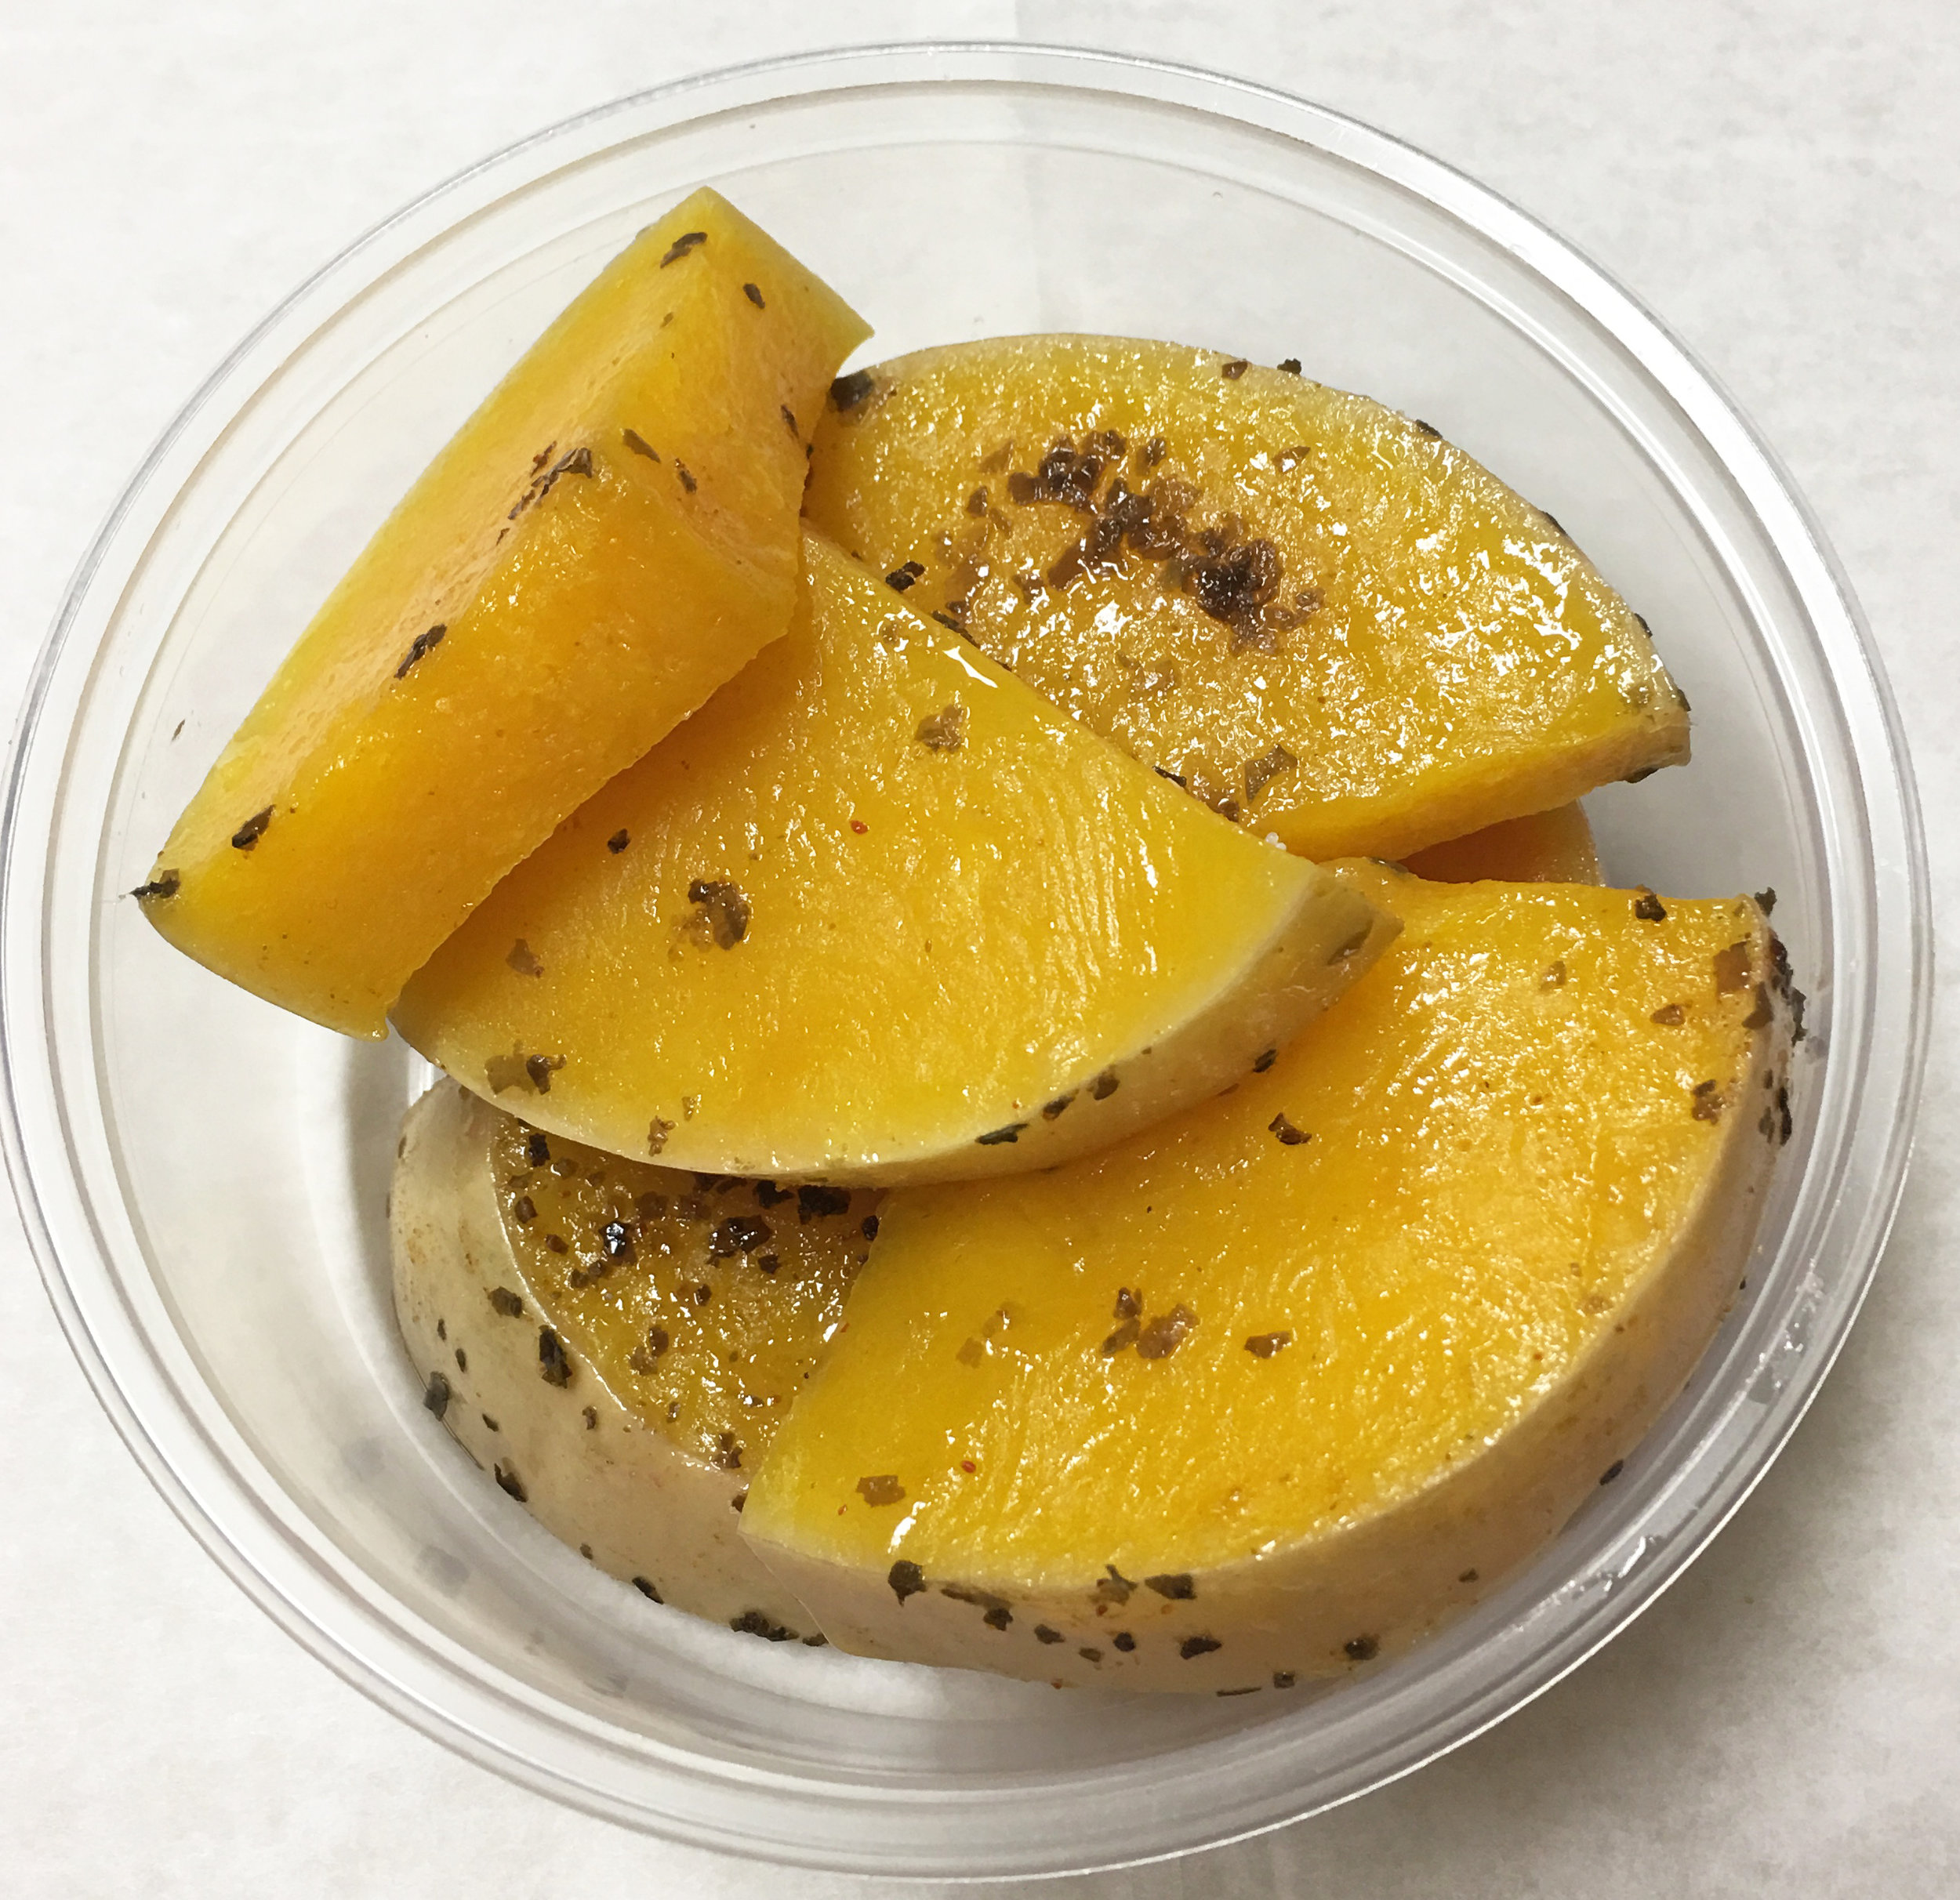 Baked butternut squash with dulse (seaweed) flakes.